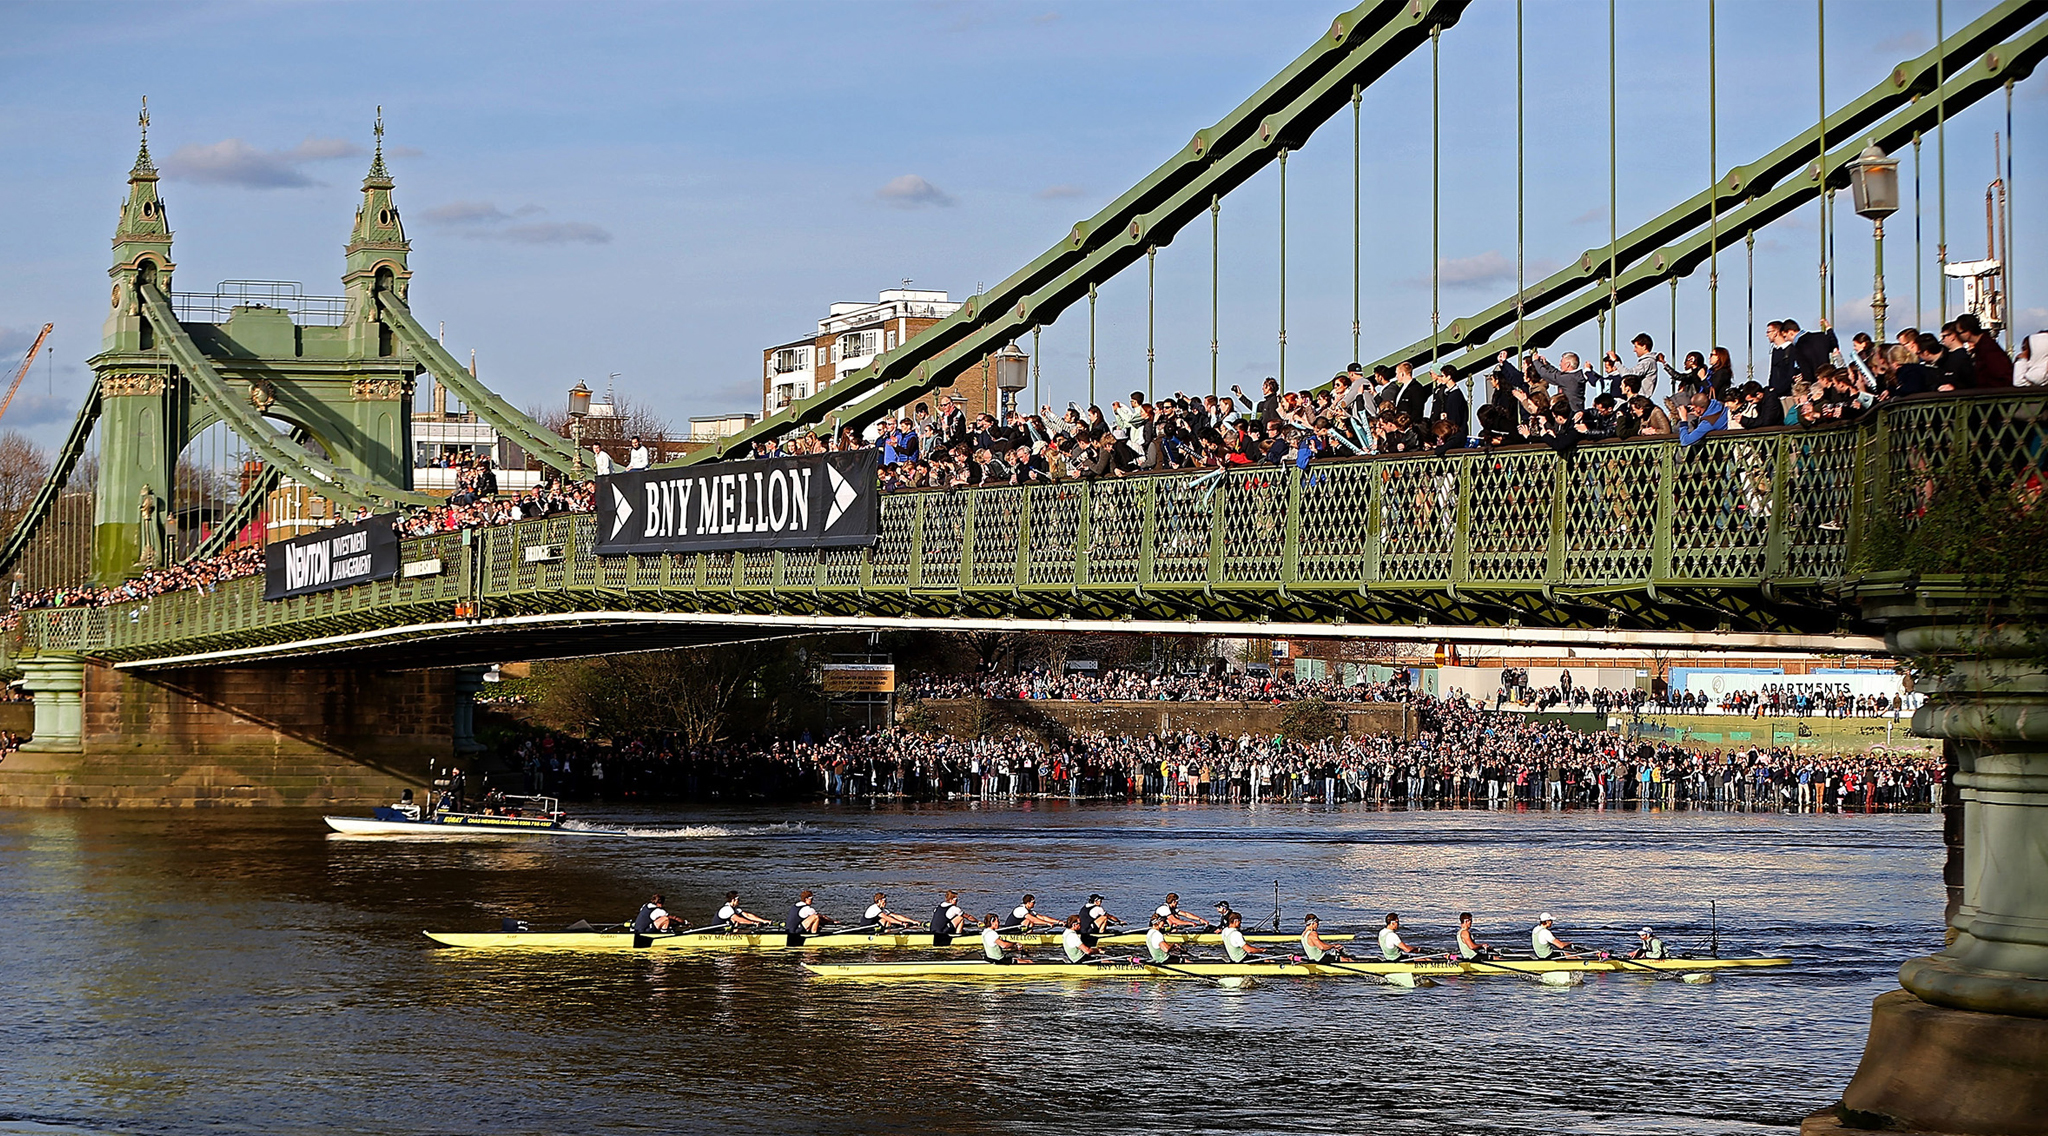 Boat Race 2020: crews, start time and everything you need to know about the  Oxford v Cambridge race